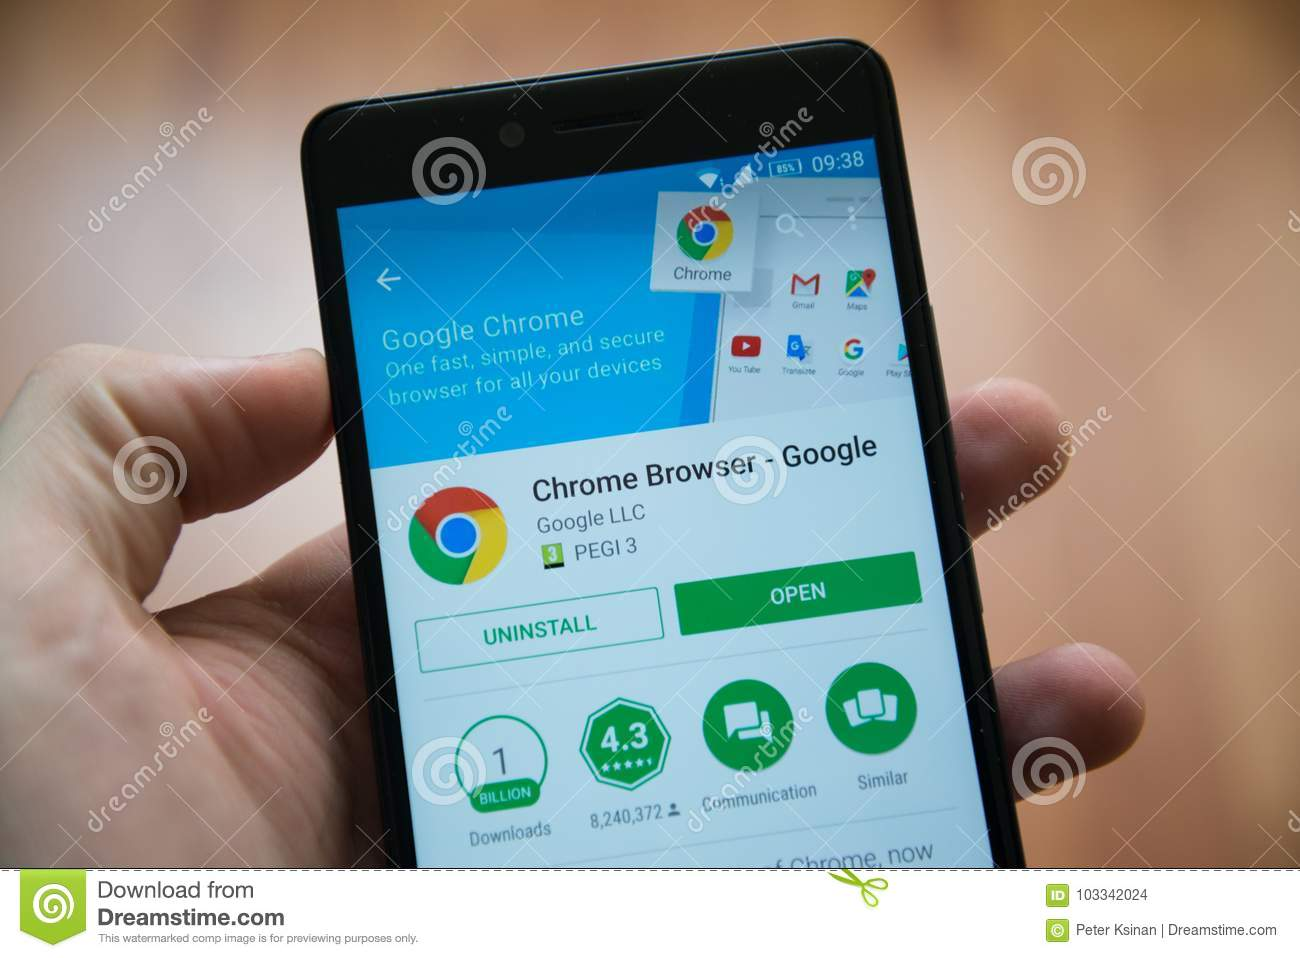 Chrome Browser application in google play store